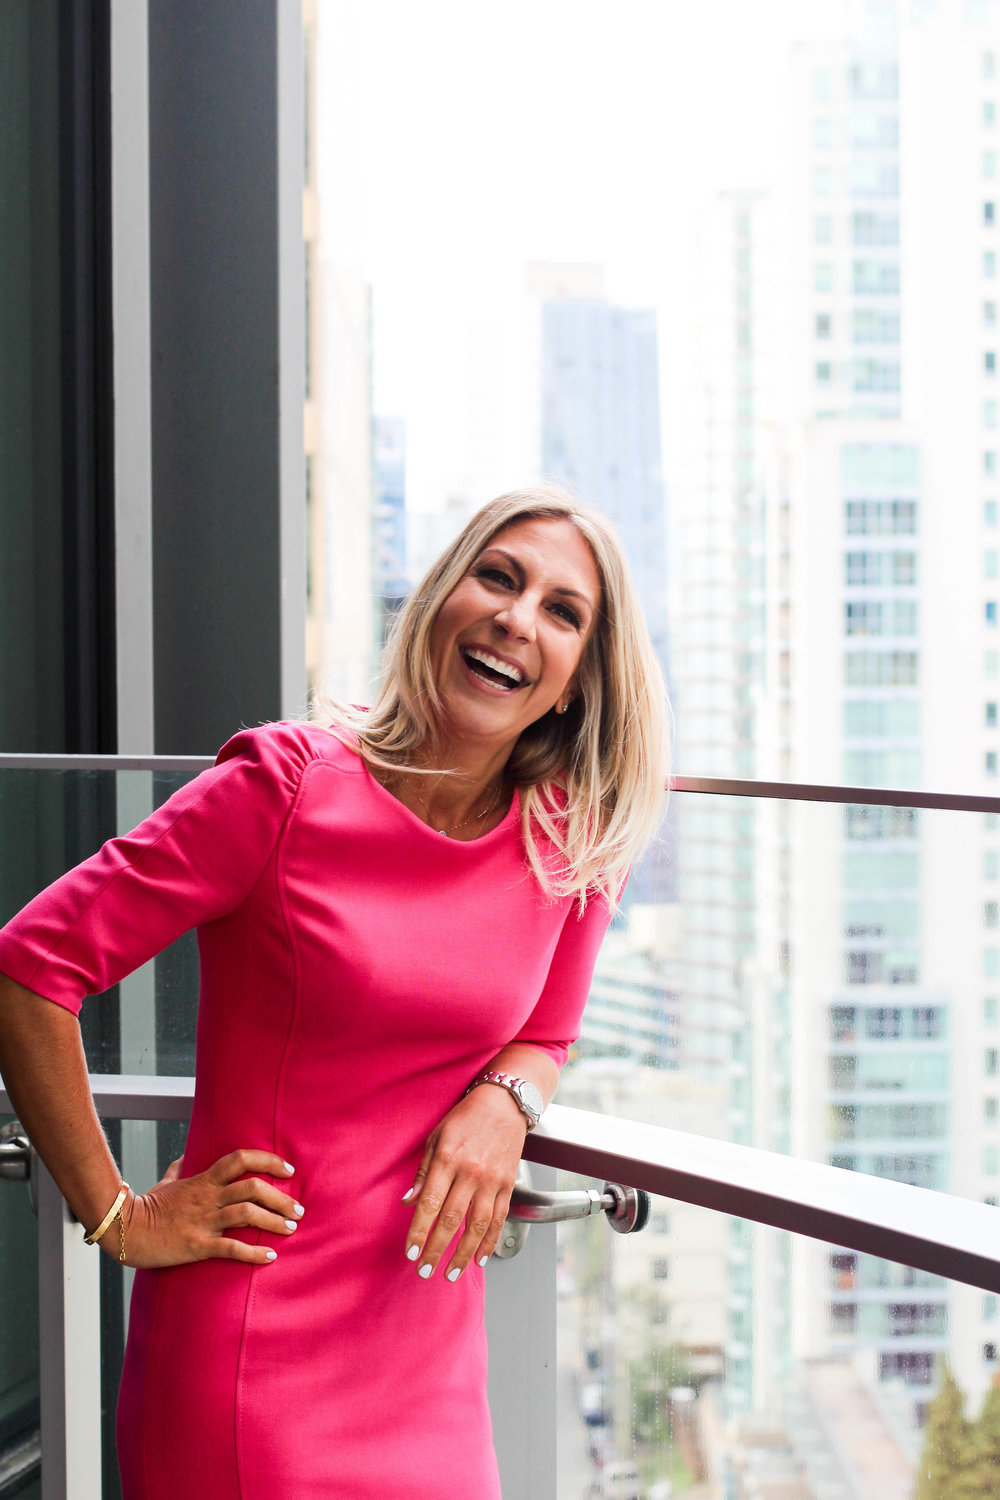 Hi, I'm Jane Stoller. - I'm a Swiss-Canadian author, speaker and life-biz organizer. My passion is in de-cluttering spaces and organizing business processes. Whether you're an individual looking to revamp your space or a large corporation needing a complete business overhaul, I can help.